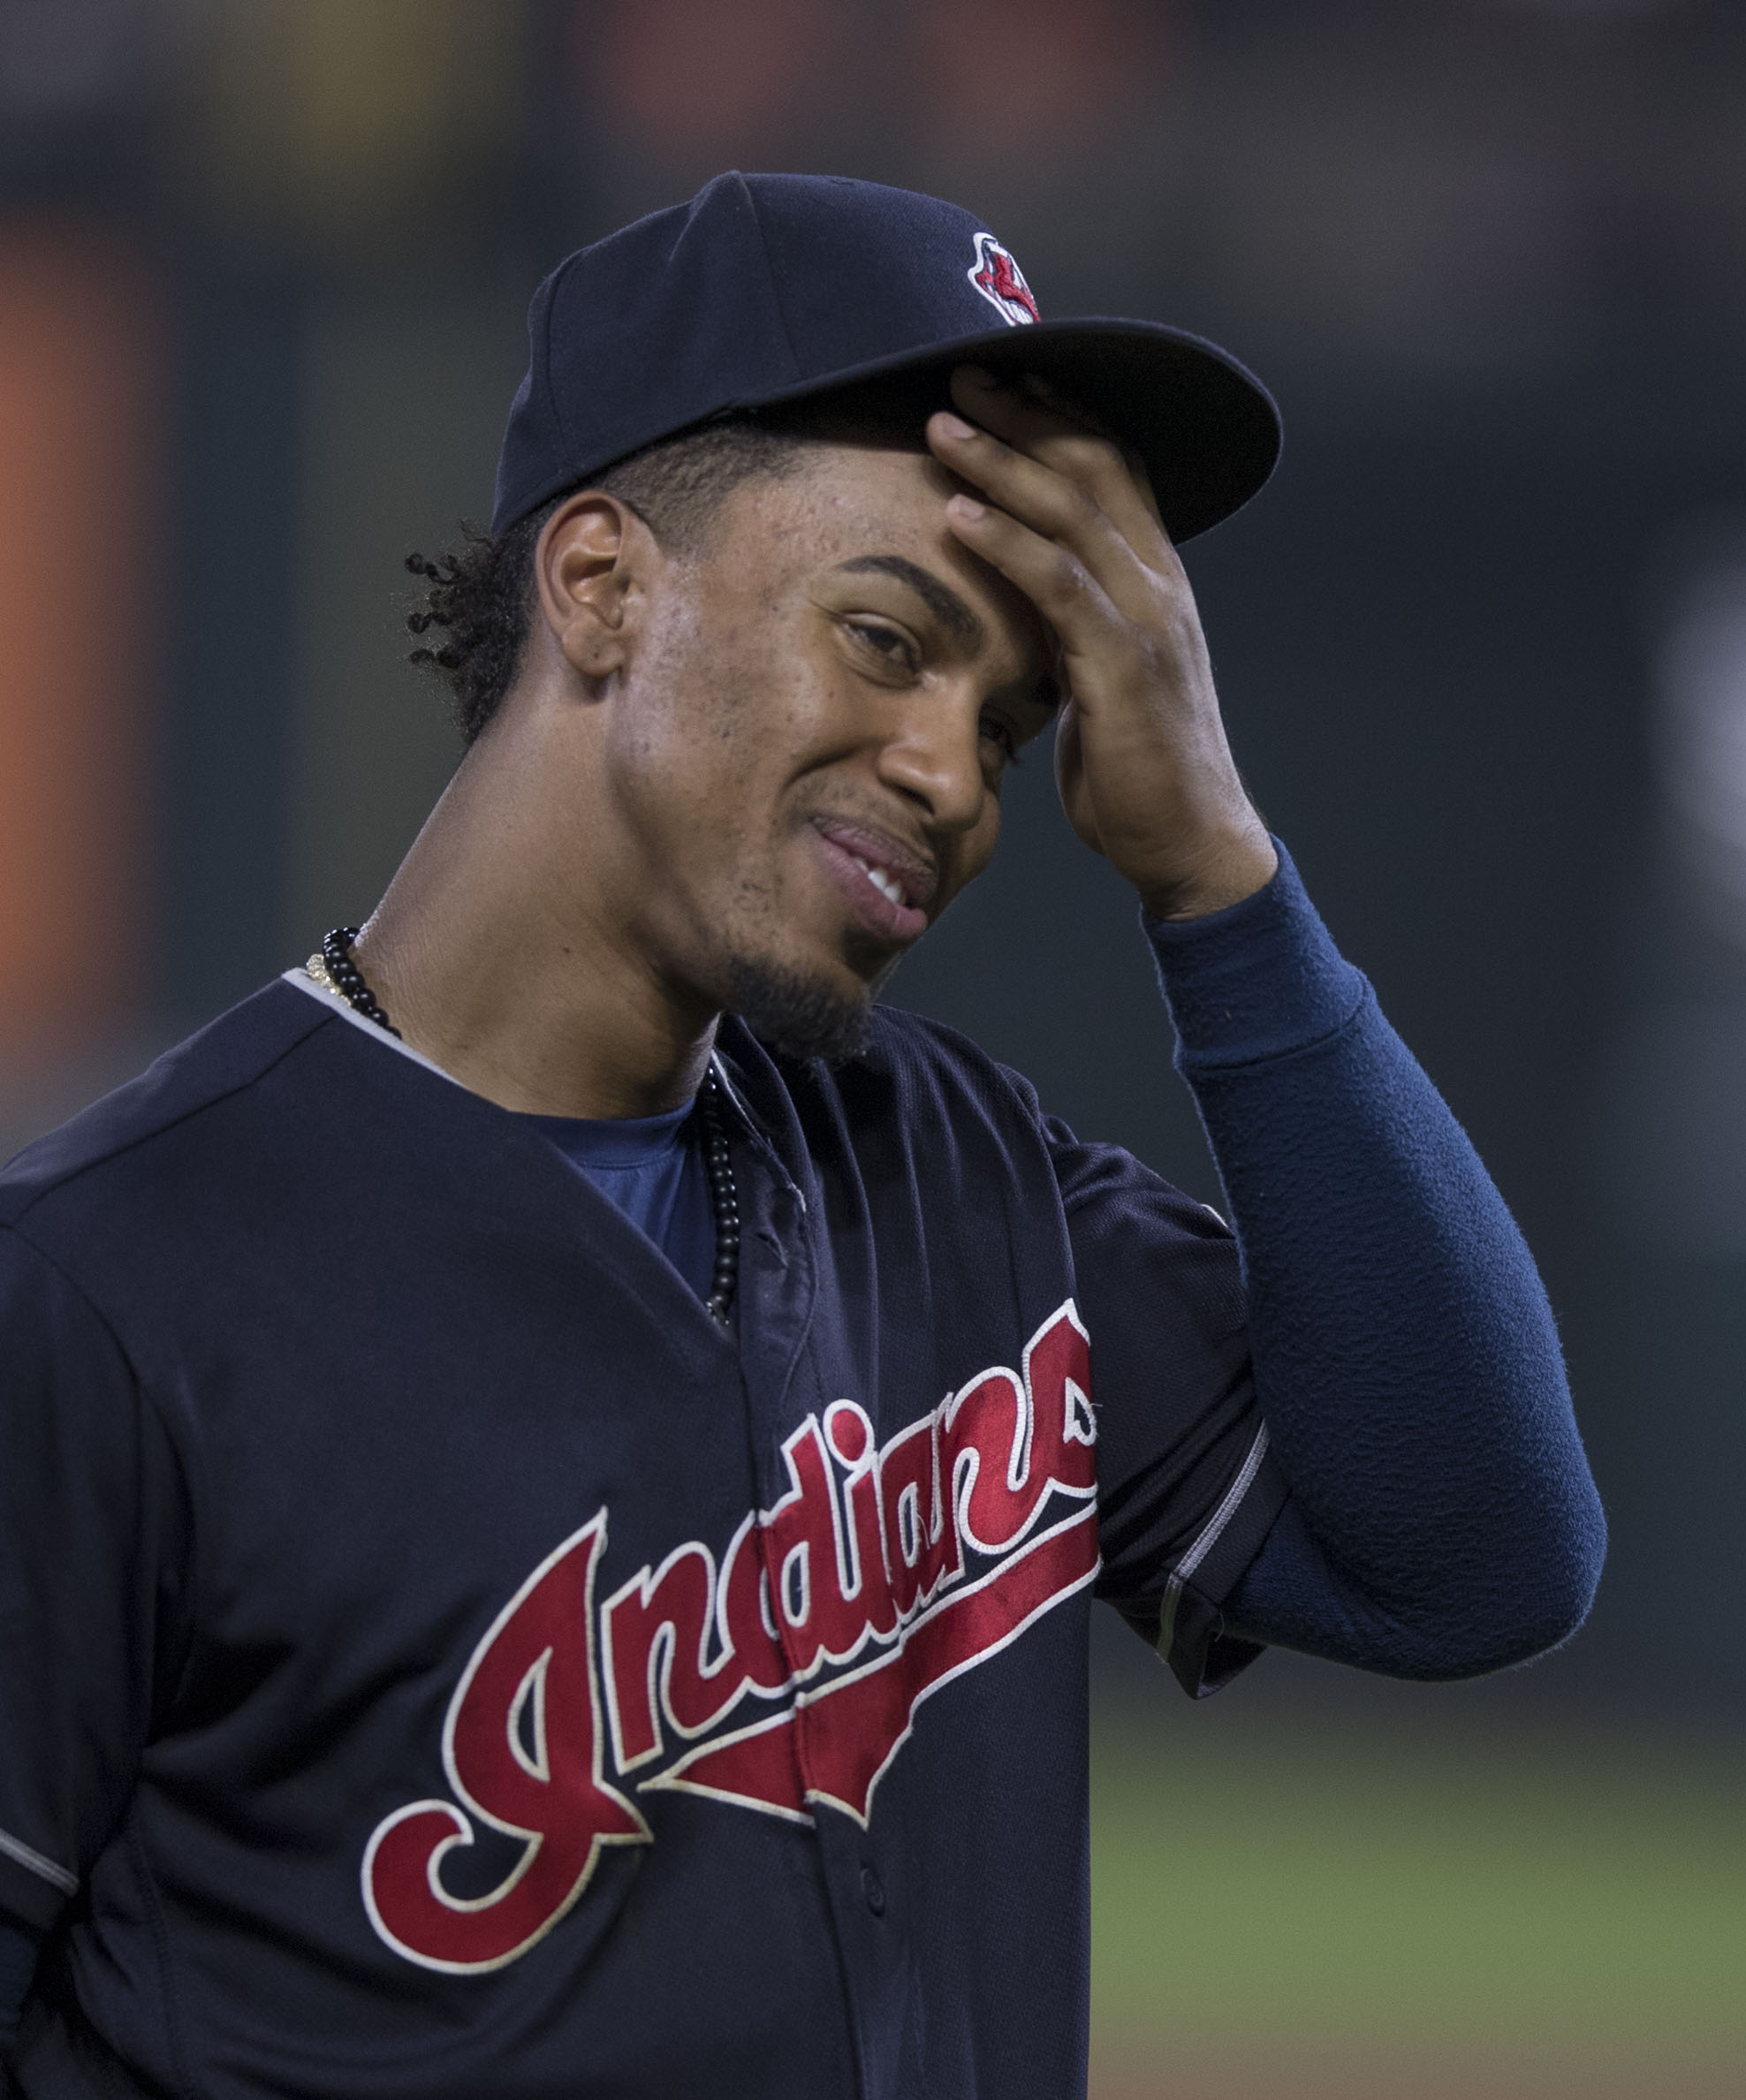 September 15, 2019 -- The Indians beat the Twins at home, 7 to 5. The Indians top hitter was Francisco Lindor and starting pitcher was Shane Bieber.